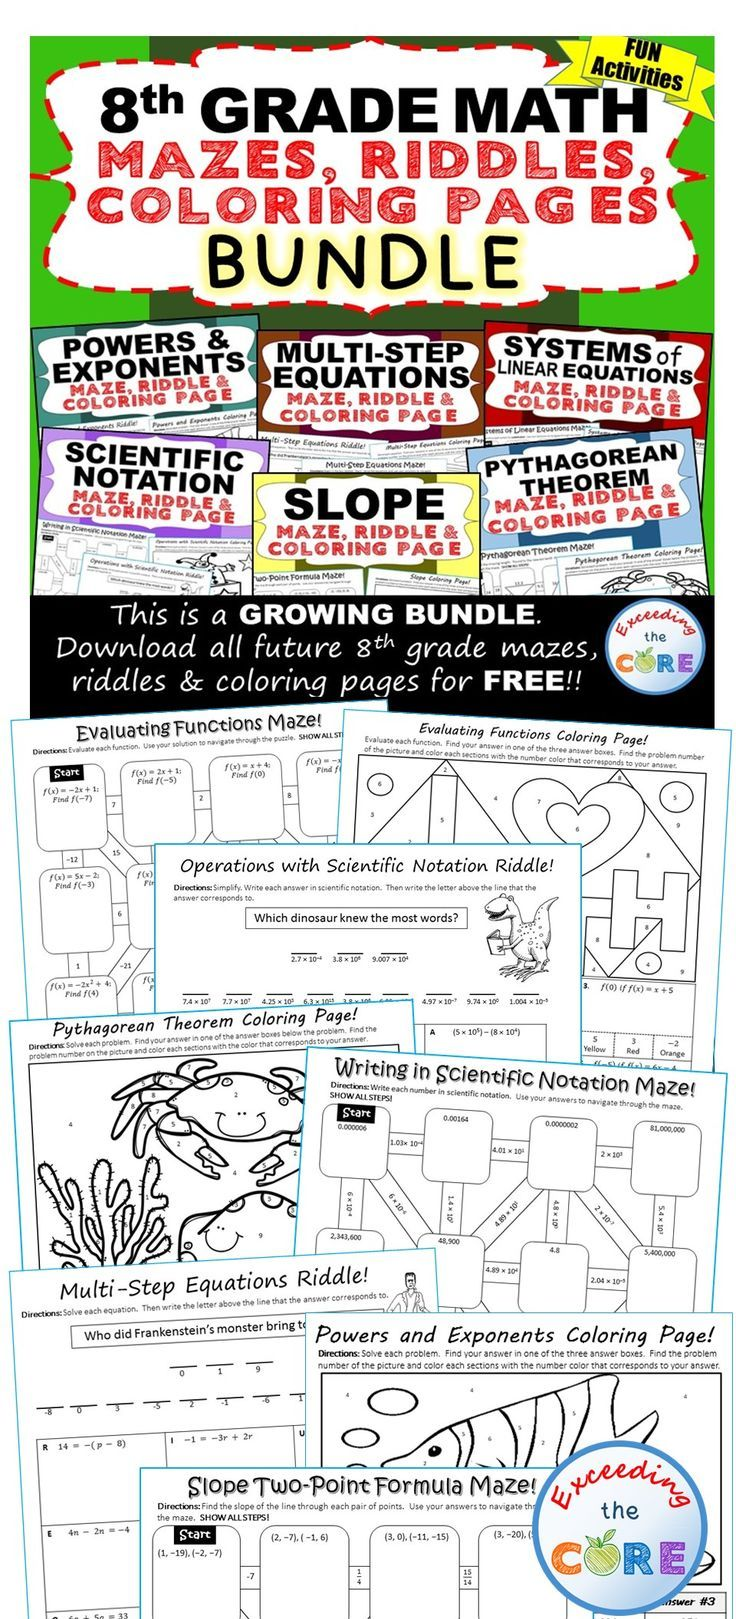 8th grade math mazes riddles coloring pages fun math activities tpt math lessons fun. Black Bedroom Furniture Sets. Home Design Ideas